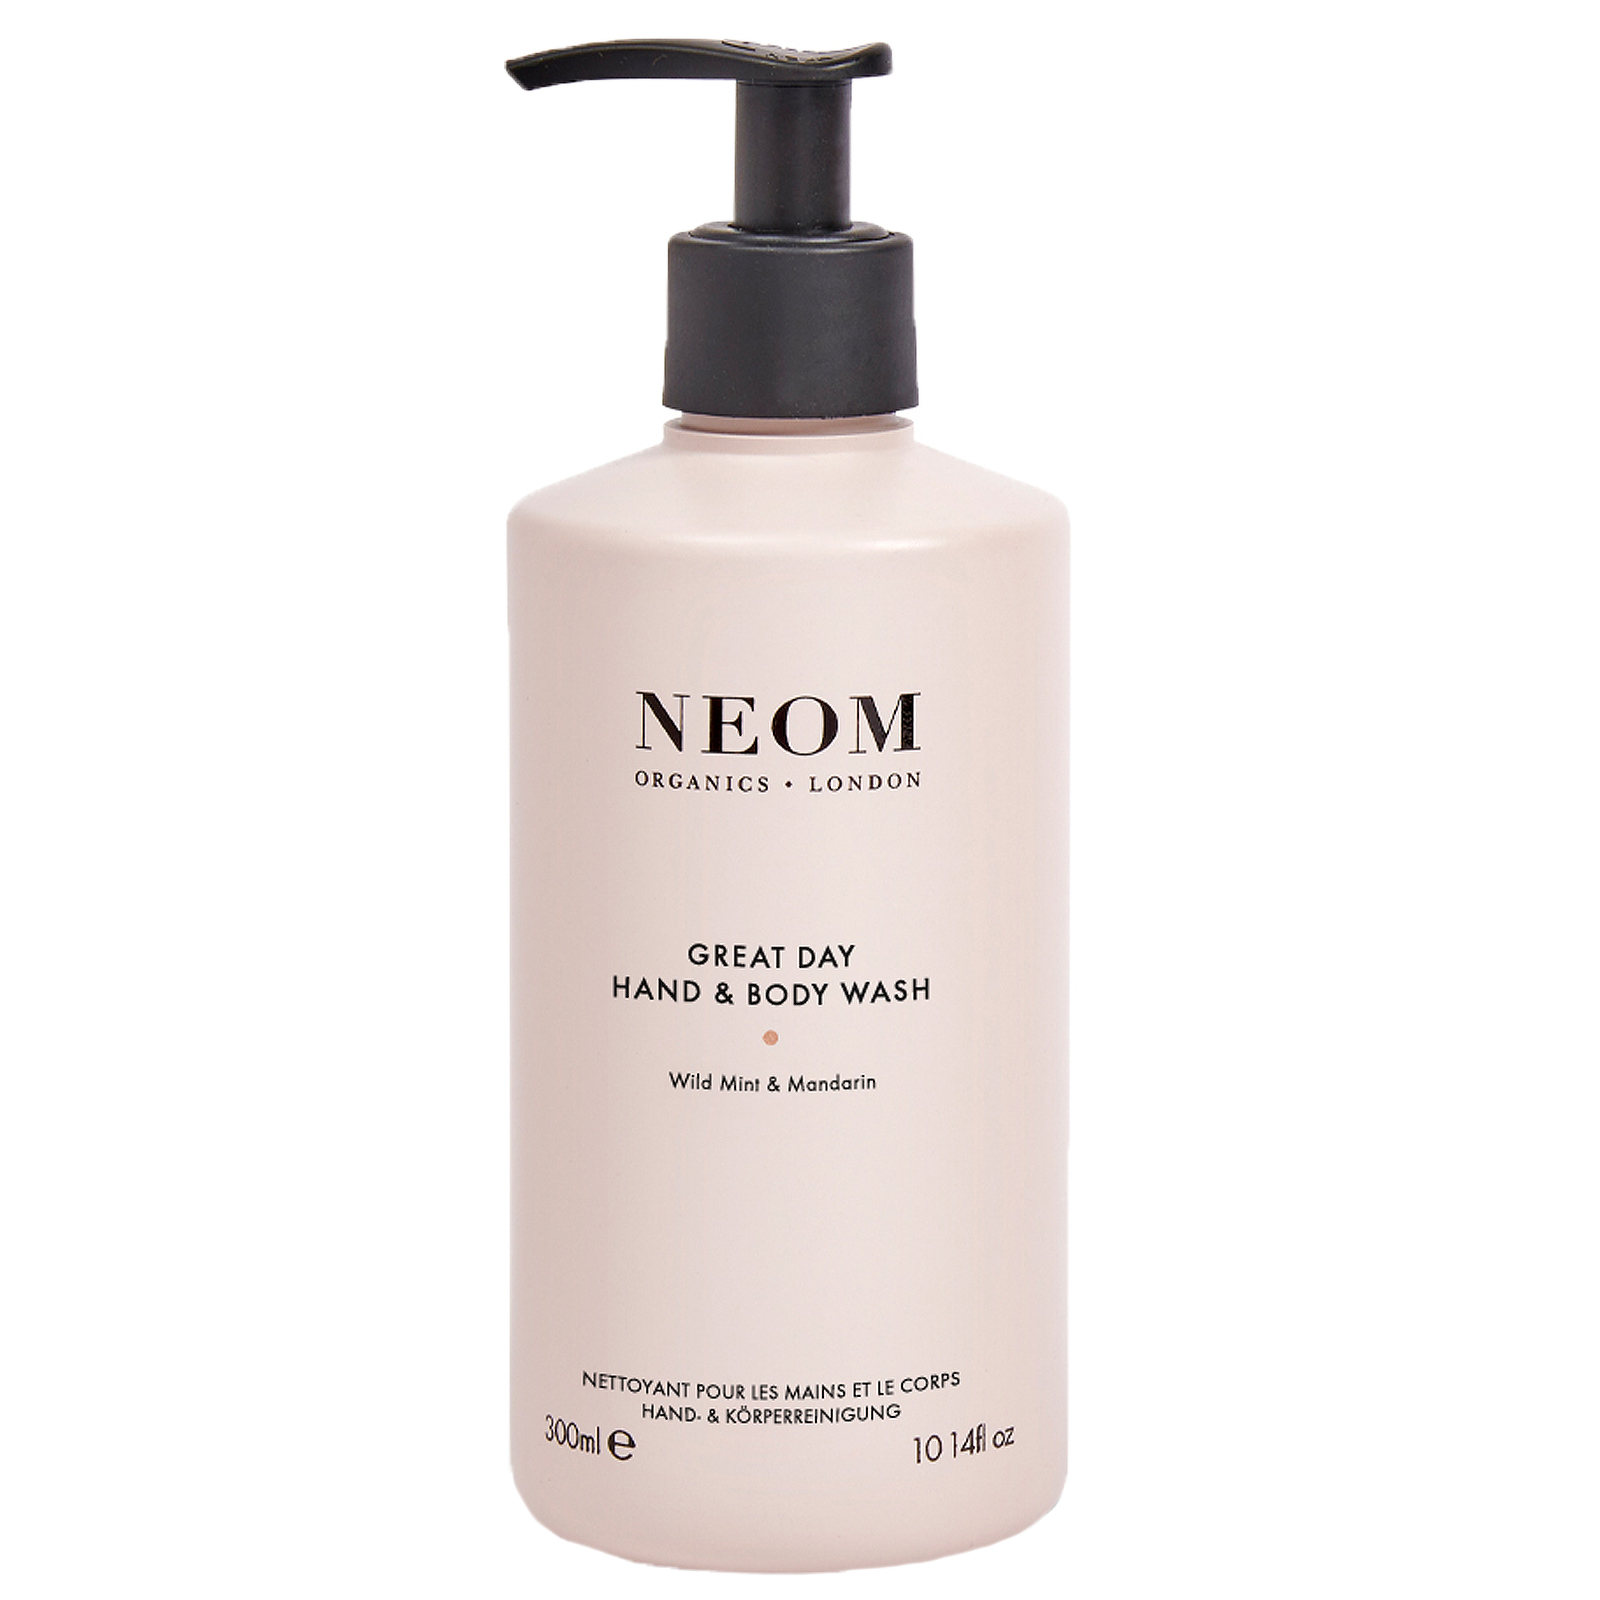 Neom Organics London Scent To Make You Happy Great Day Body & Hand Wash 300ml